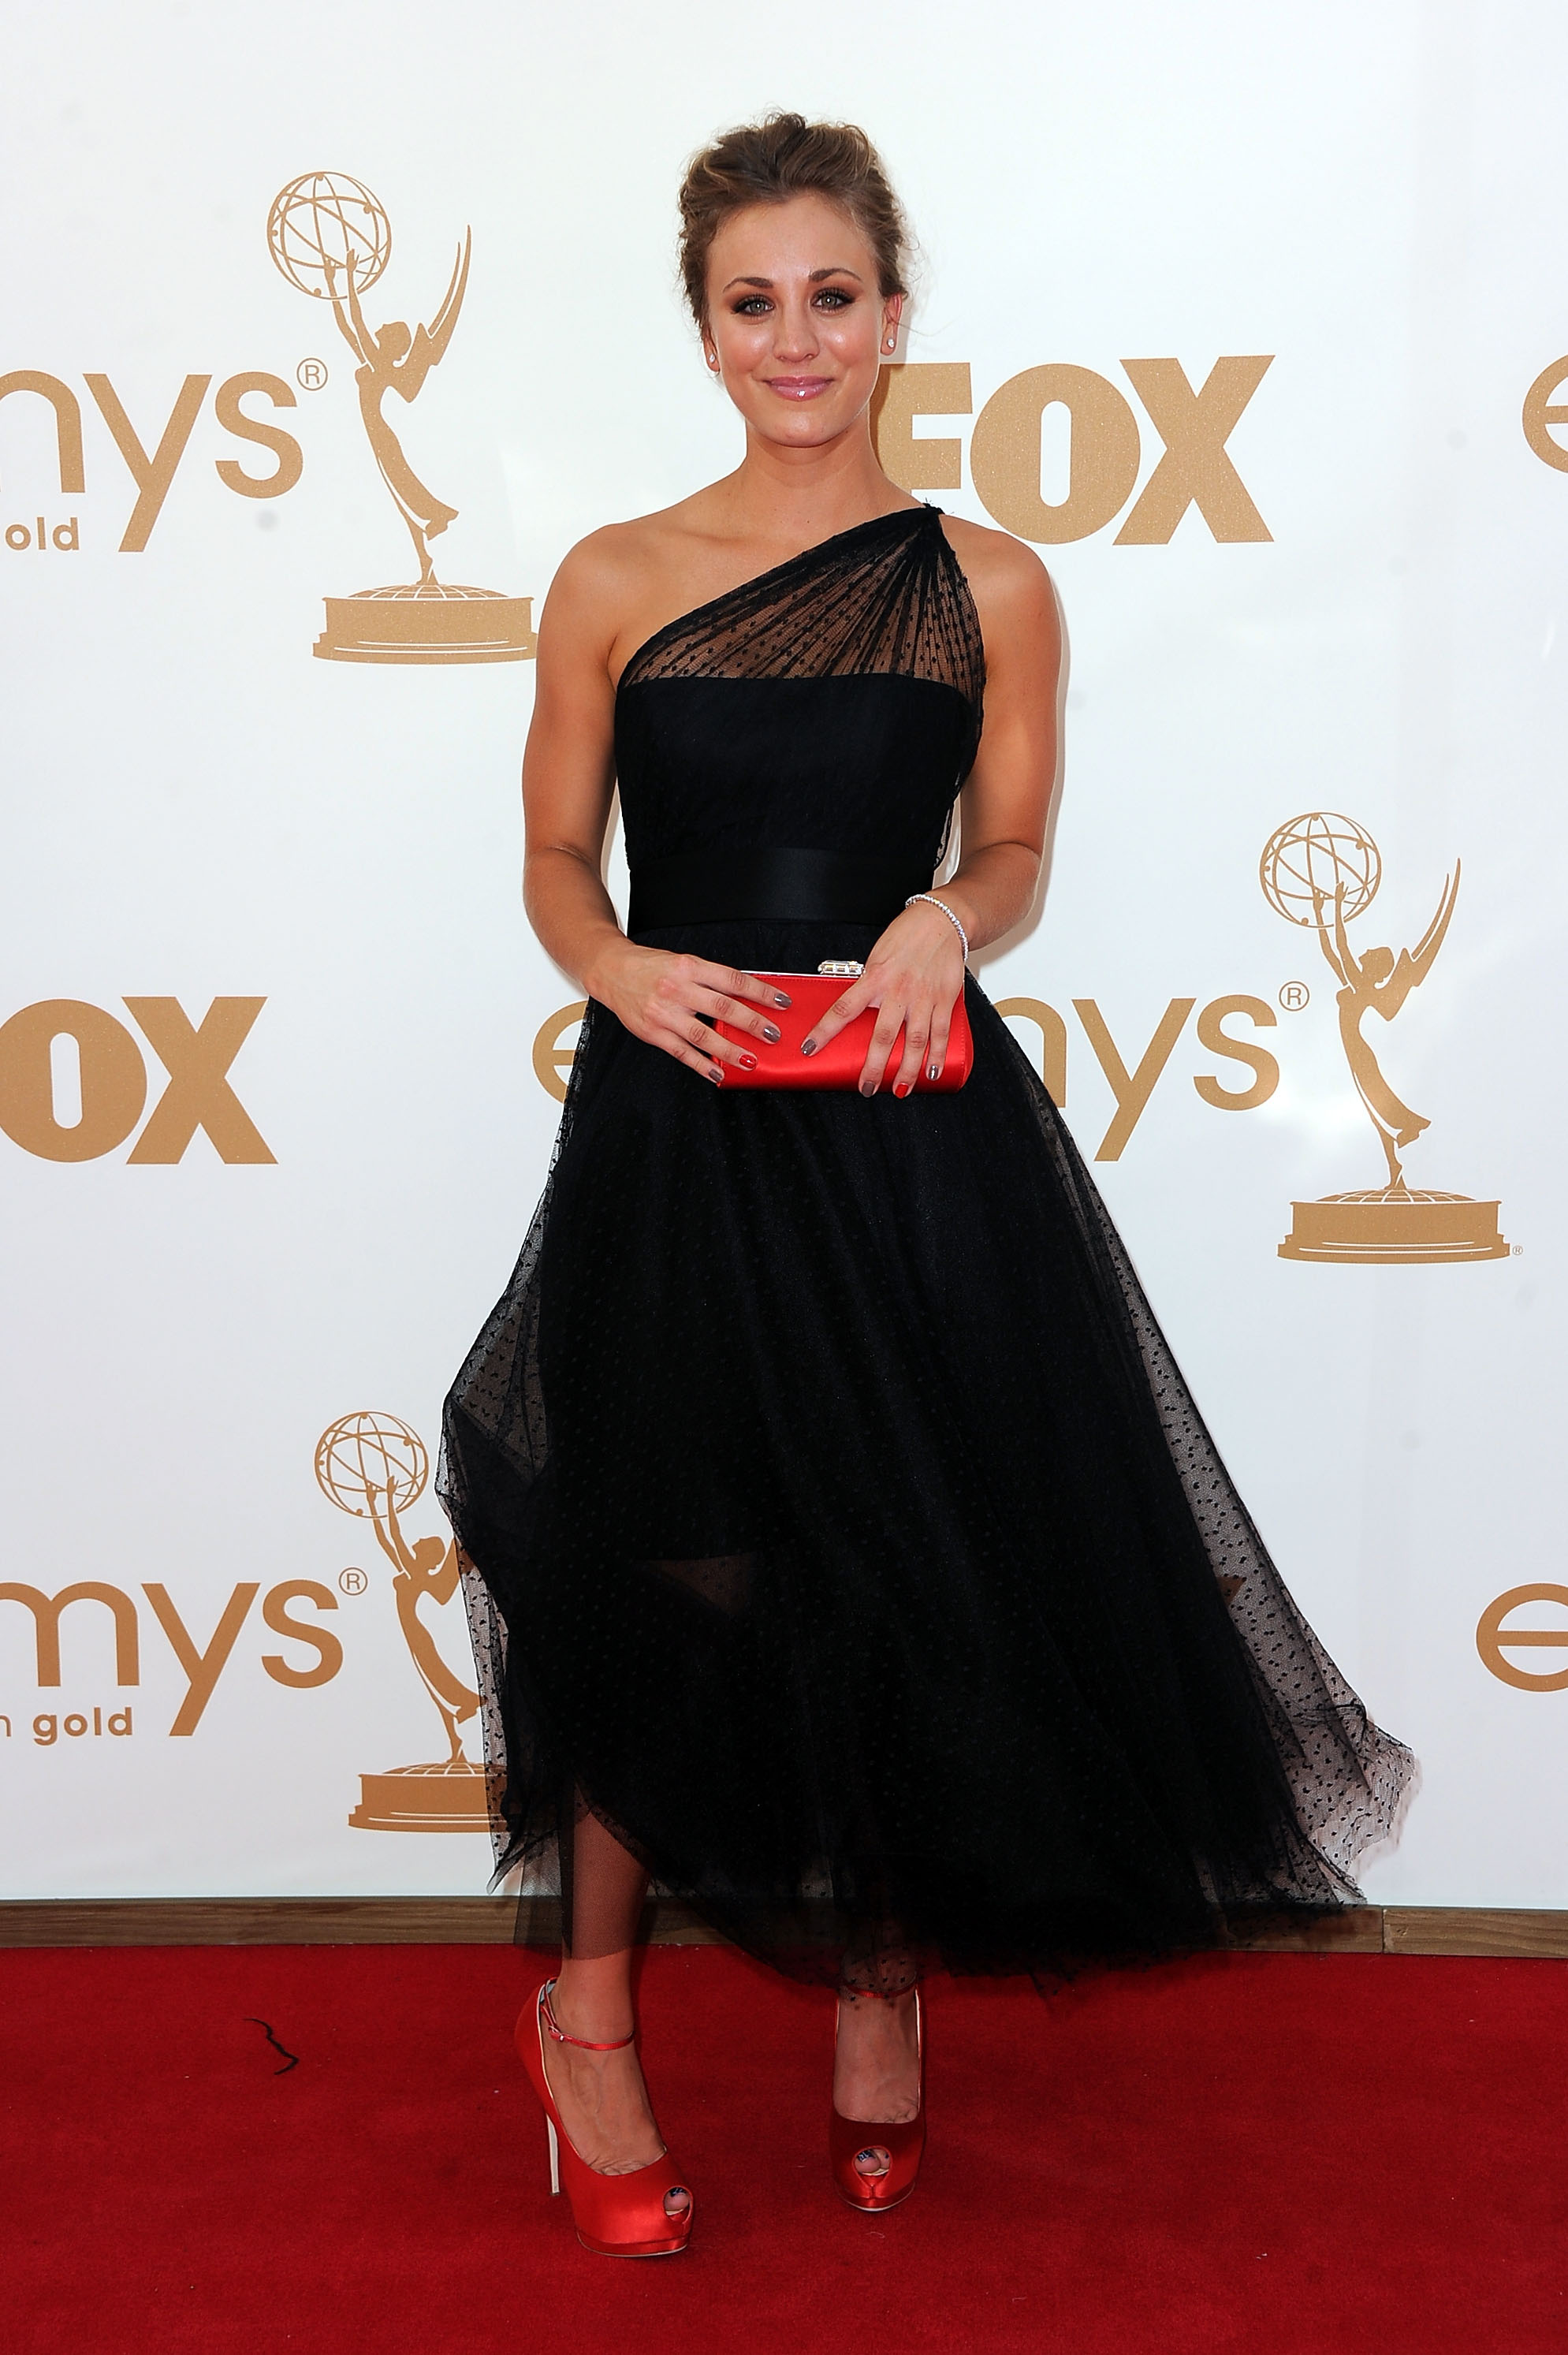 Kaley Cuoco at the 2011 Emmys.